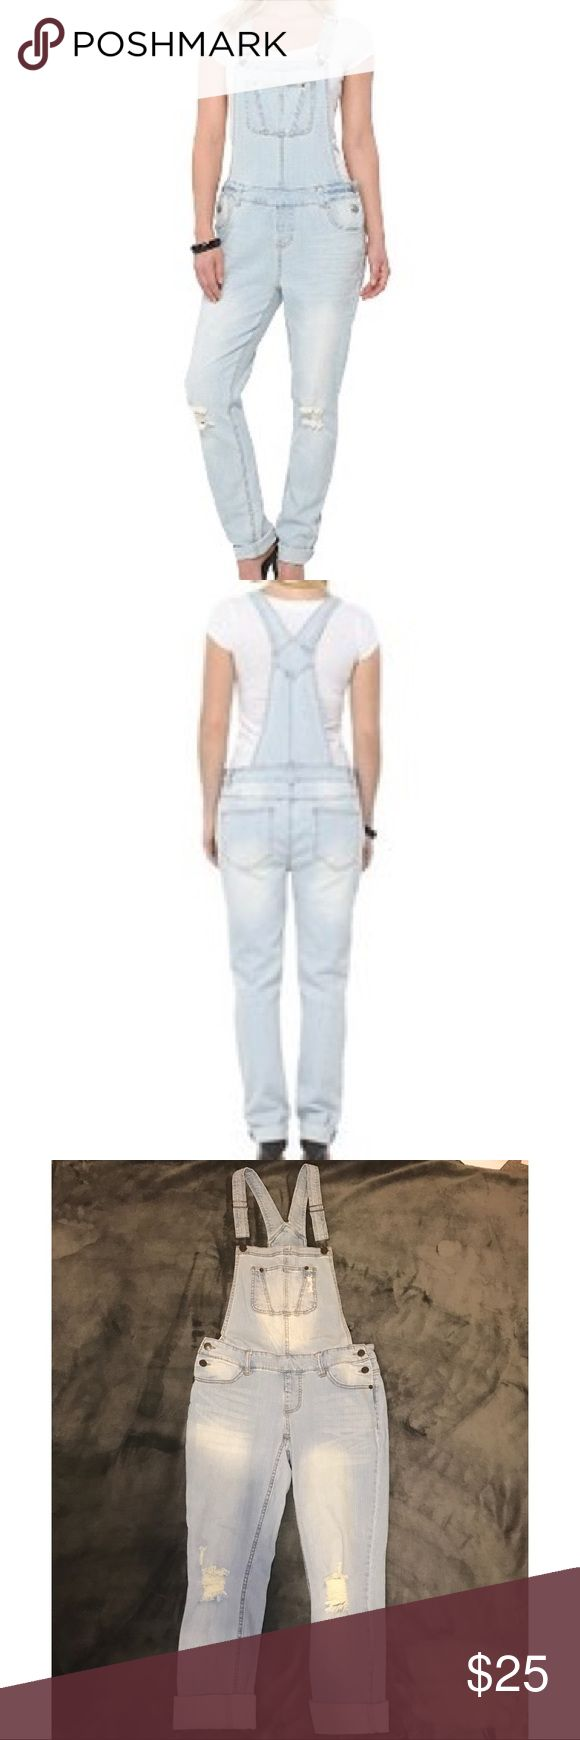 Mossimo Distressed Boyfriend Style Overalls Light wash distressed boyfriend style overalls from Mossimo! They have only been worn one time and are in perfect condition with no signs of wear. Selling because they're getting no use! 99% cotton/ 1% spandex material Mossimo Supply Co. Jeans Overalls